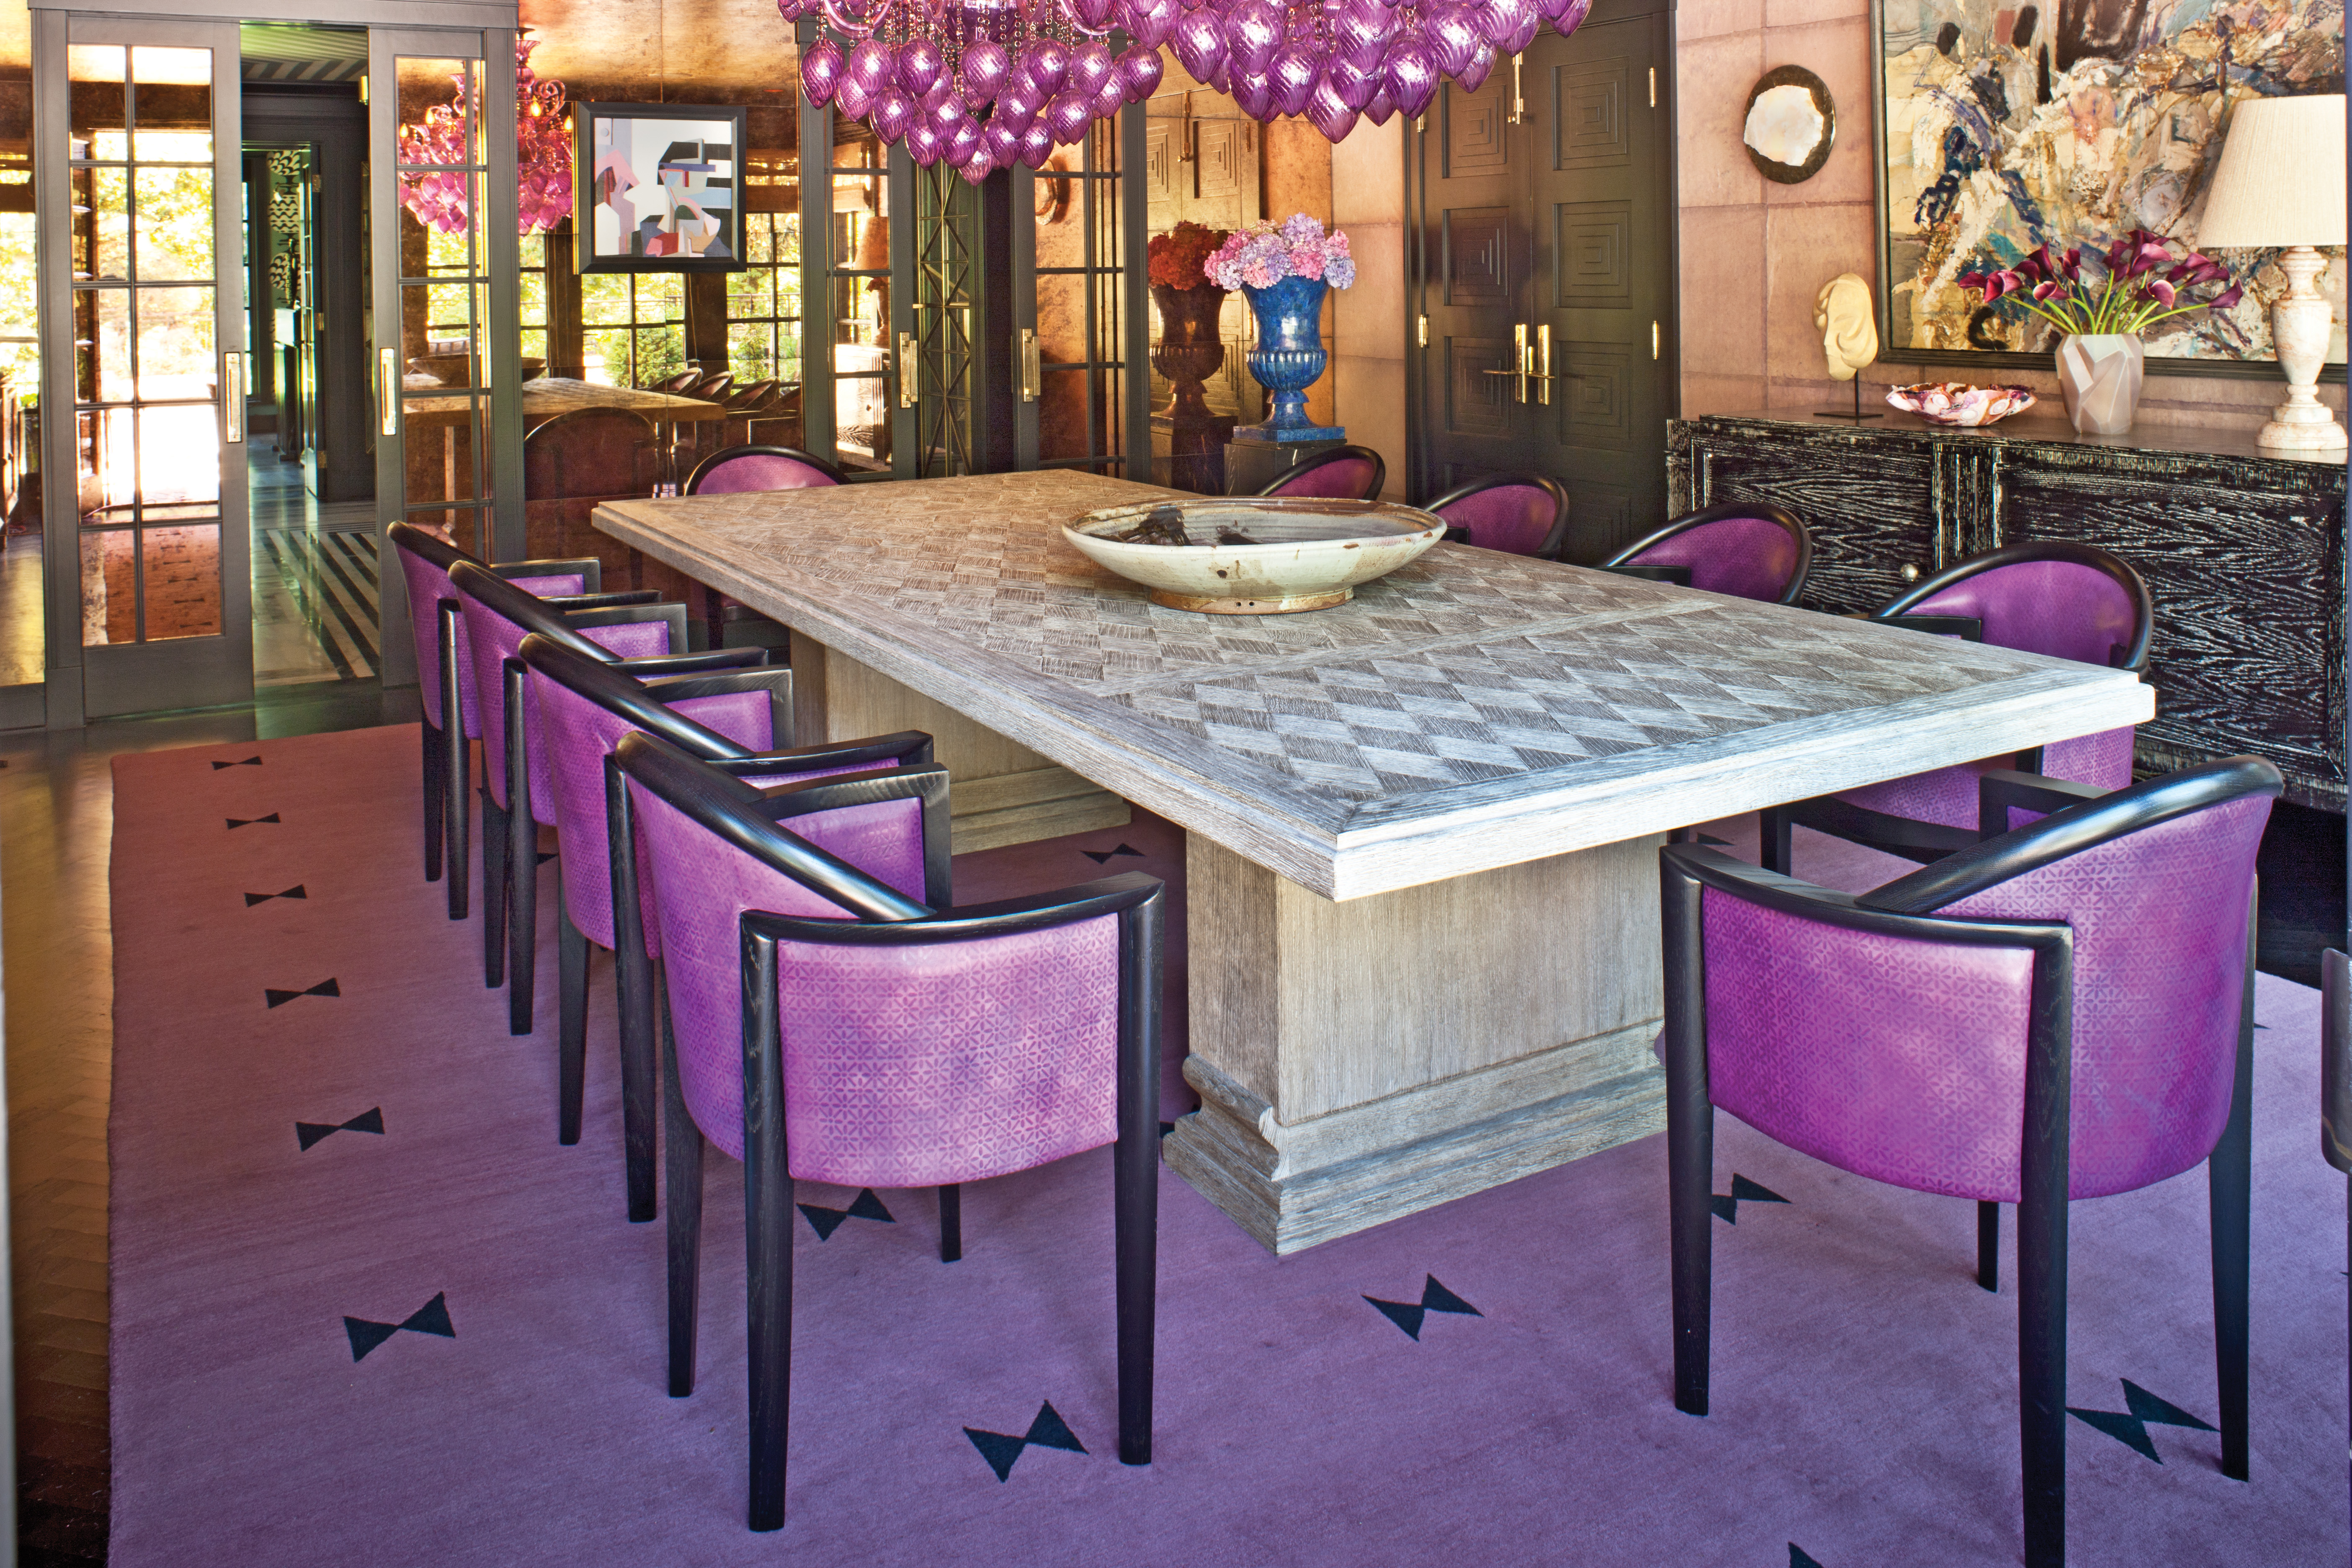 Celebrated and recognized by luxurious interiors reminiscent of worn world of Hollywood, Kelly Wearstler.